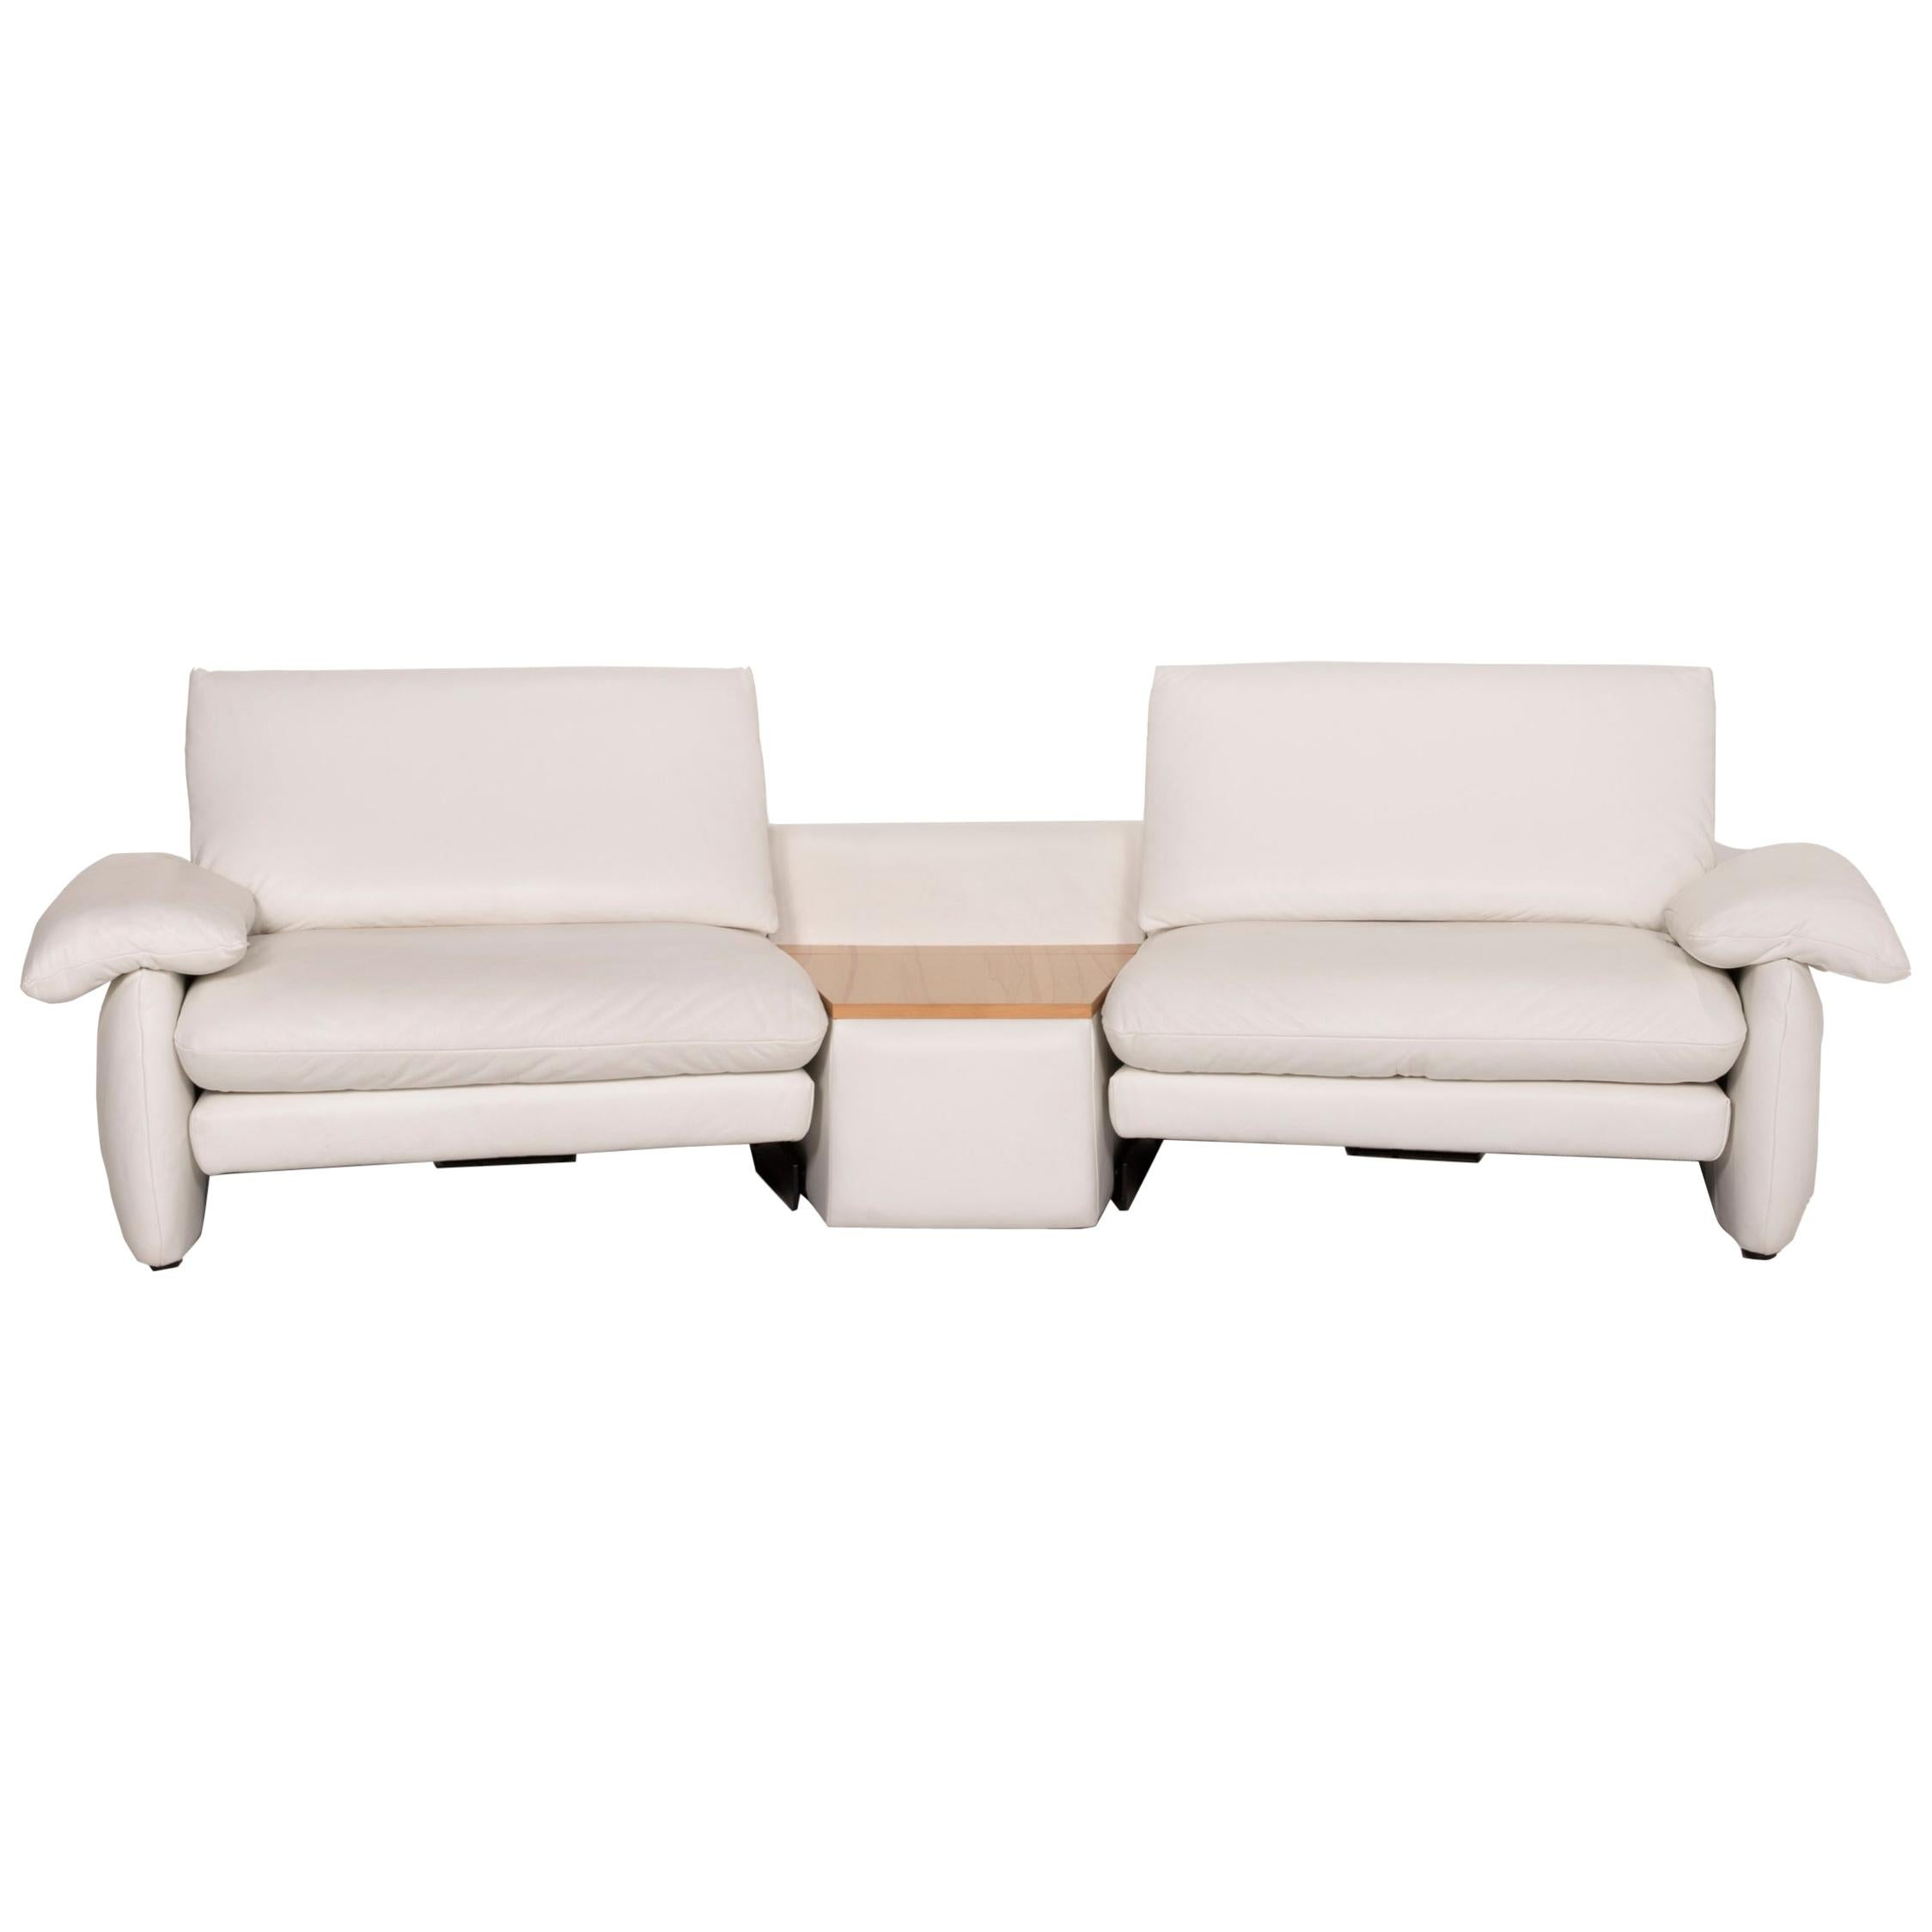 Koinor Leather Sofa Cream Two-Seater Electric Relaxation Function Storage Space